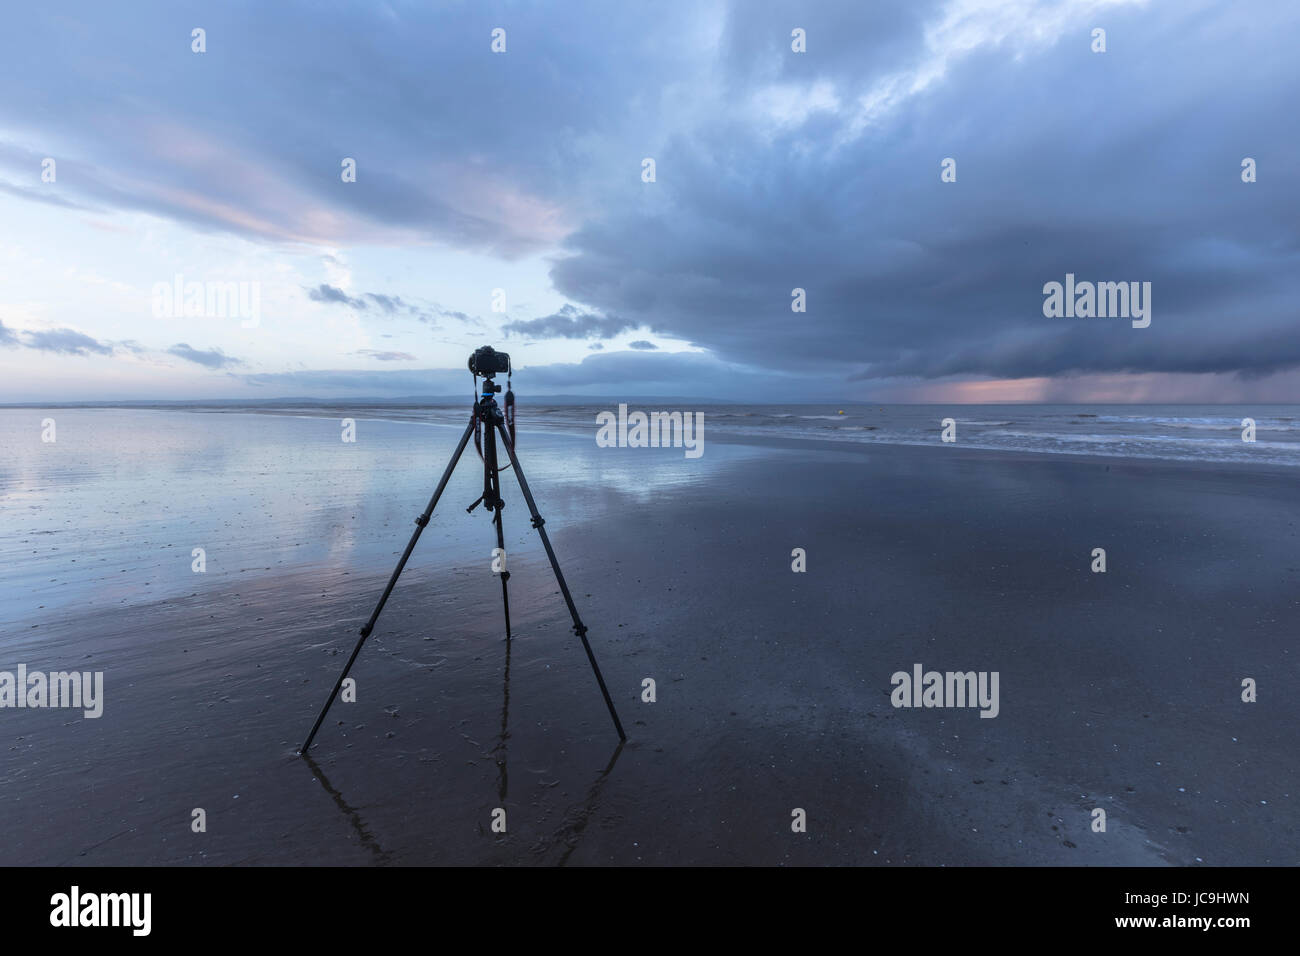 camera on a tripod during low tide at the beach, waiting to capture the sunset - Stock Image